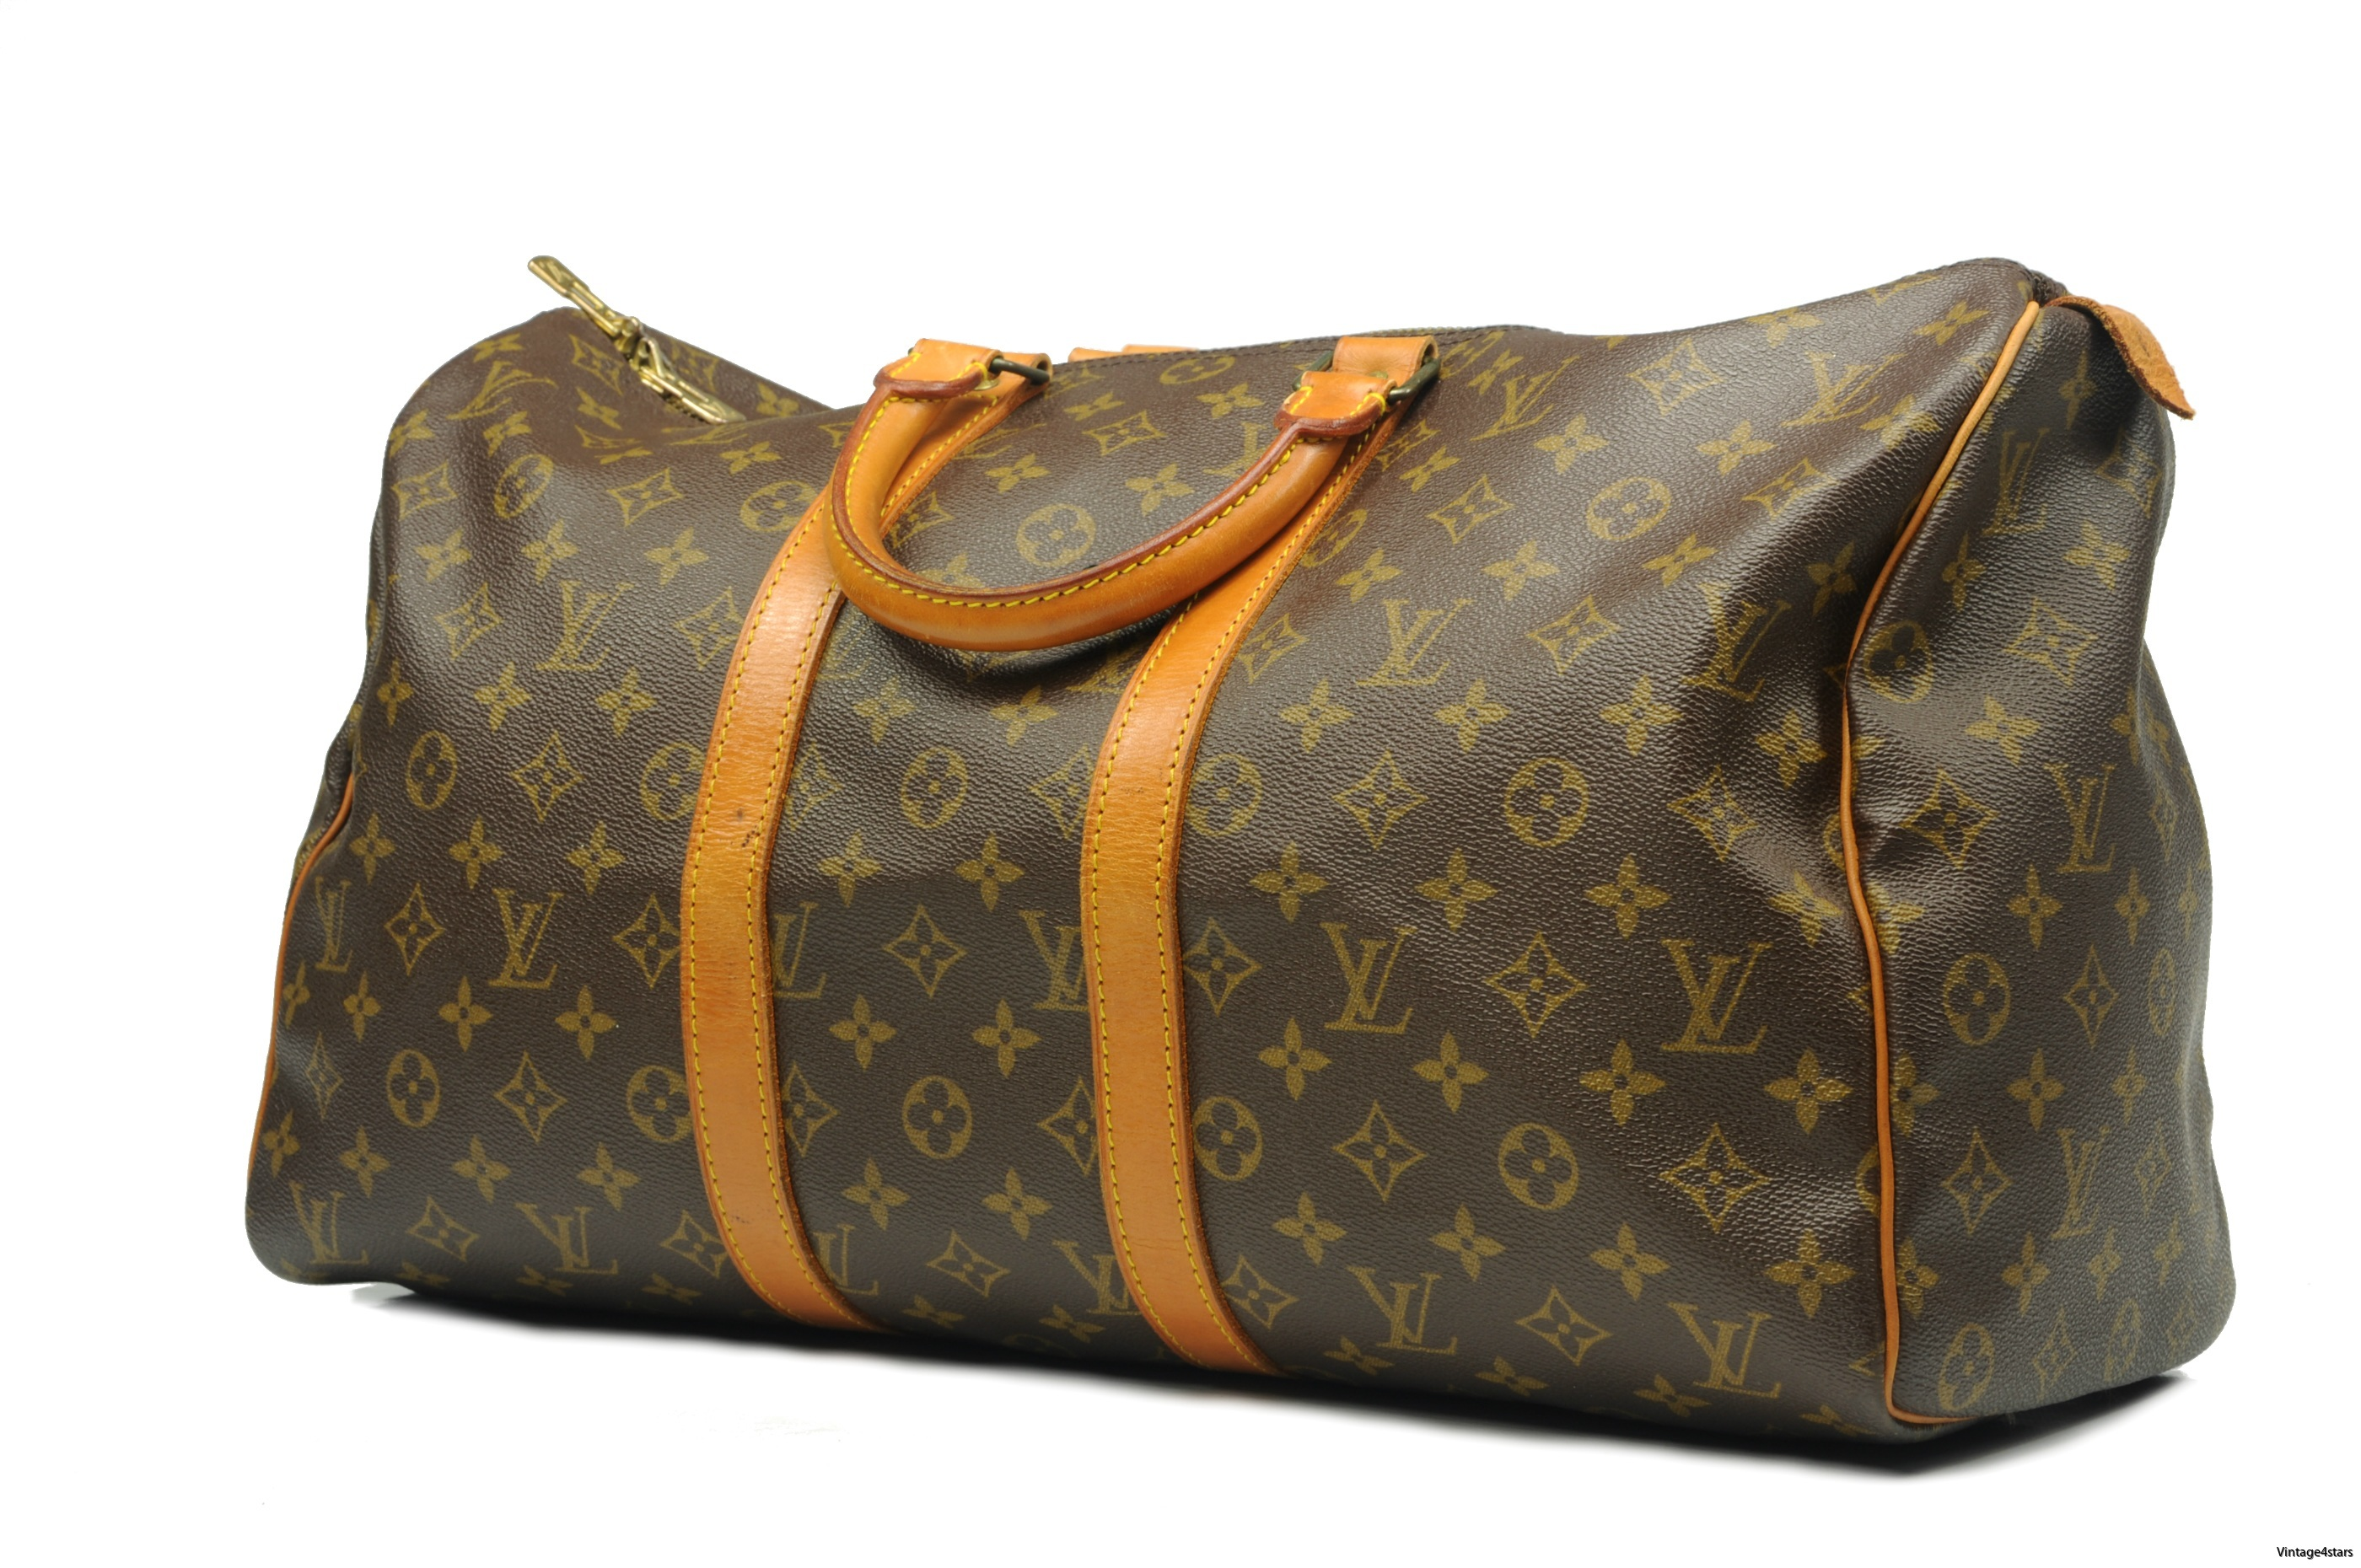 Louis Vuitton Keepall 45 1000